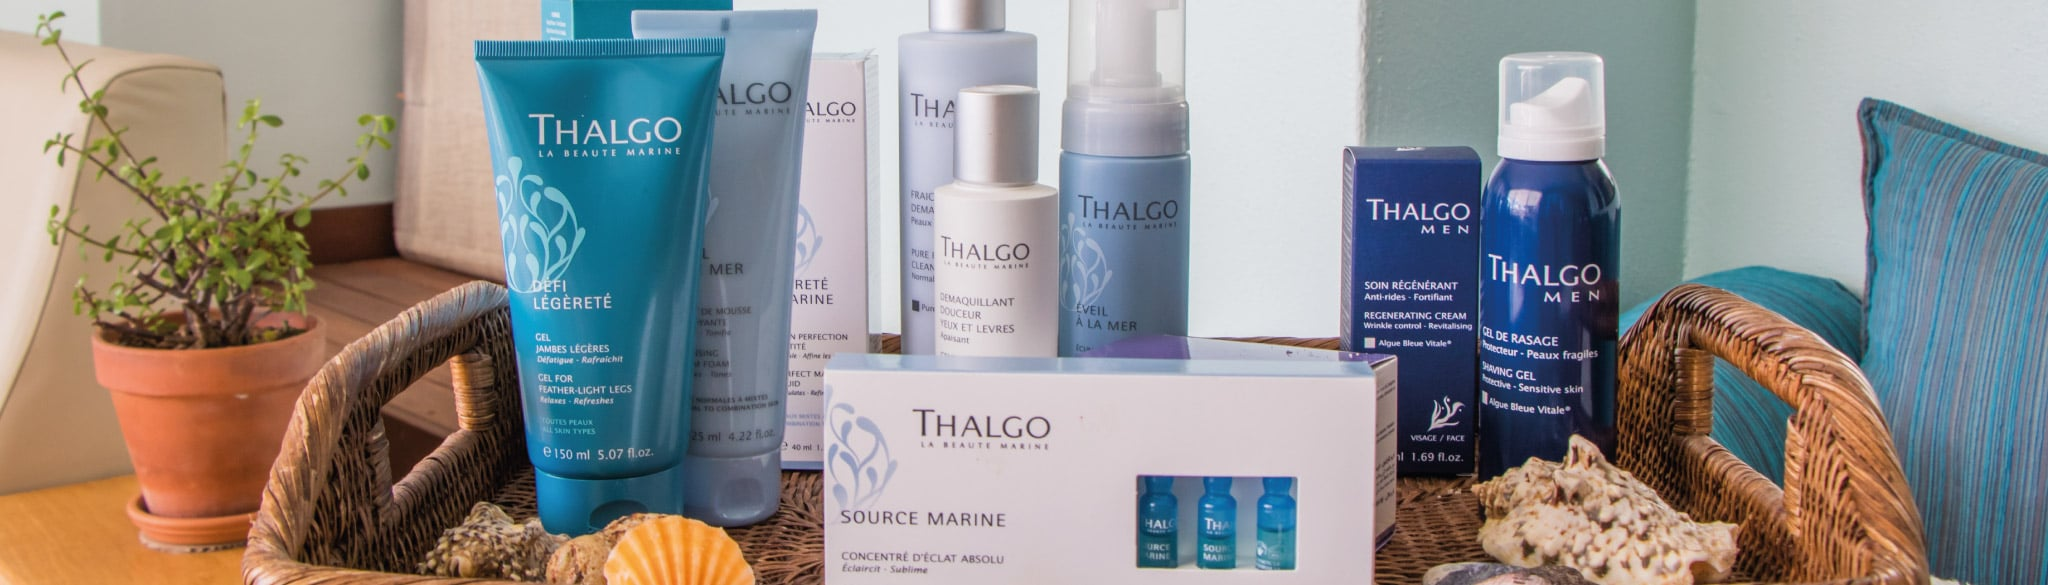 mint-wellness-spa-thalgo-products